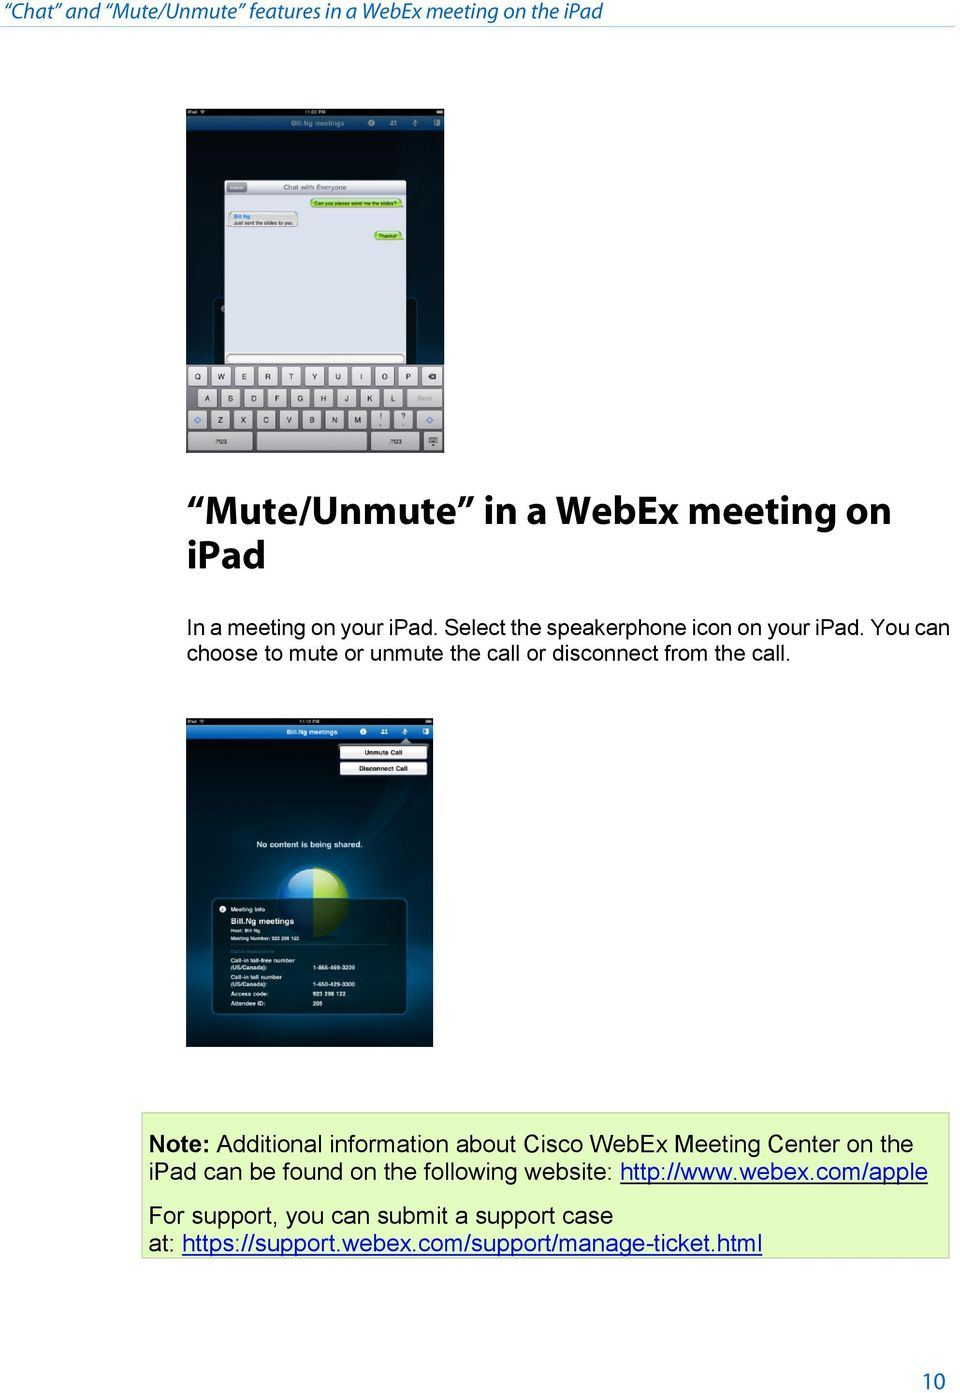 Note: Additional information about Cisco WebEx Meeting Center on the ipad can be found on the following website: